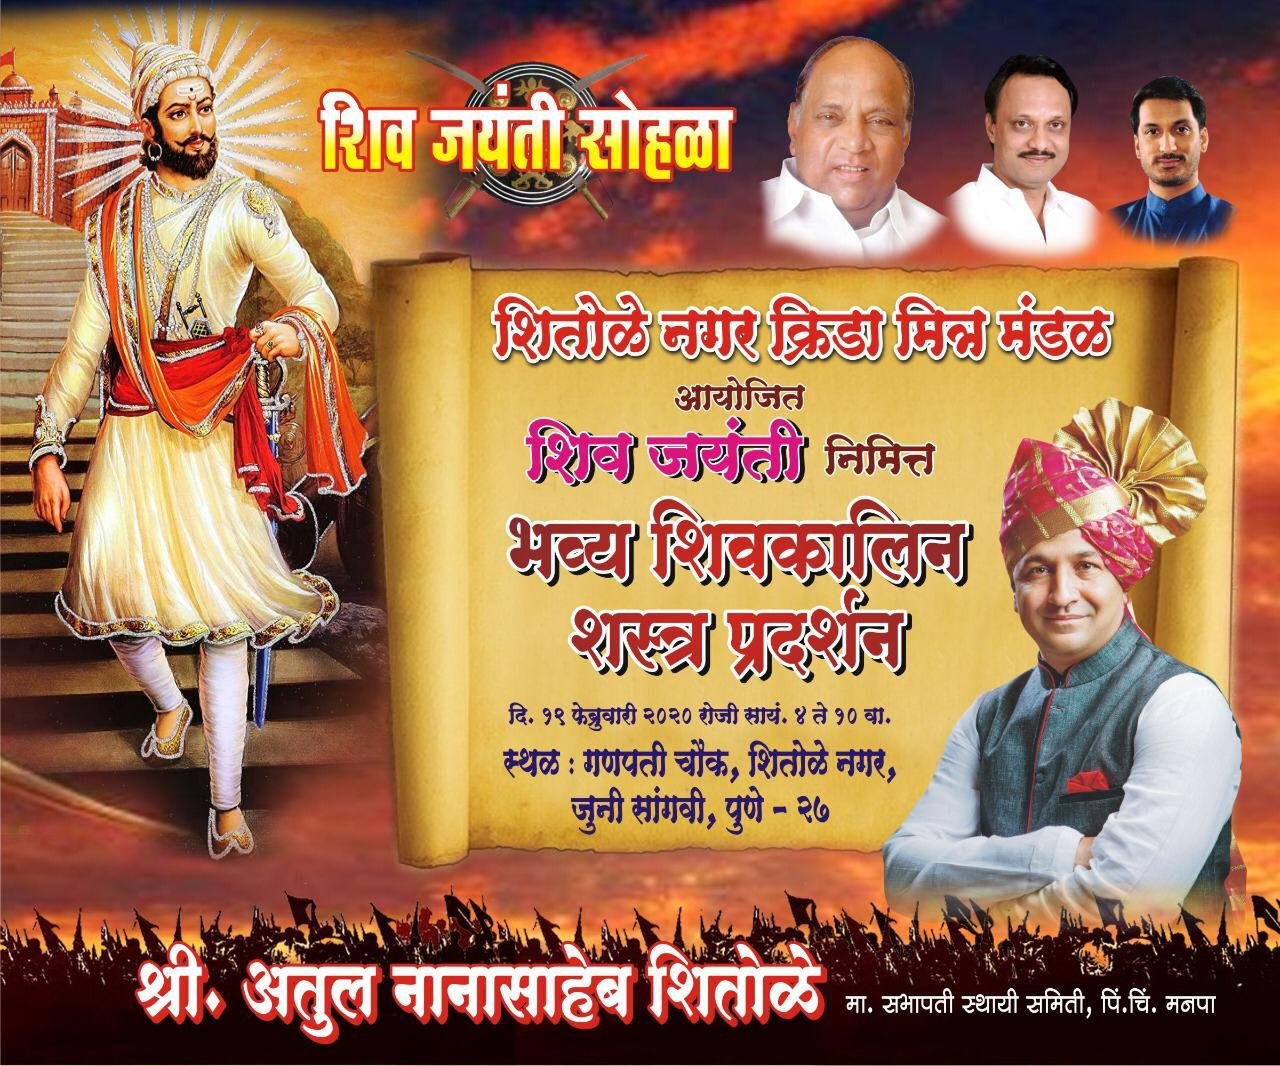 Shivaji era arms display in Sangvi to celebrate 390th Shiv Jayanti...